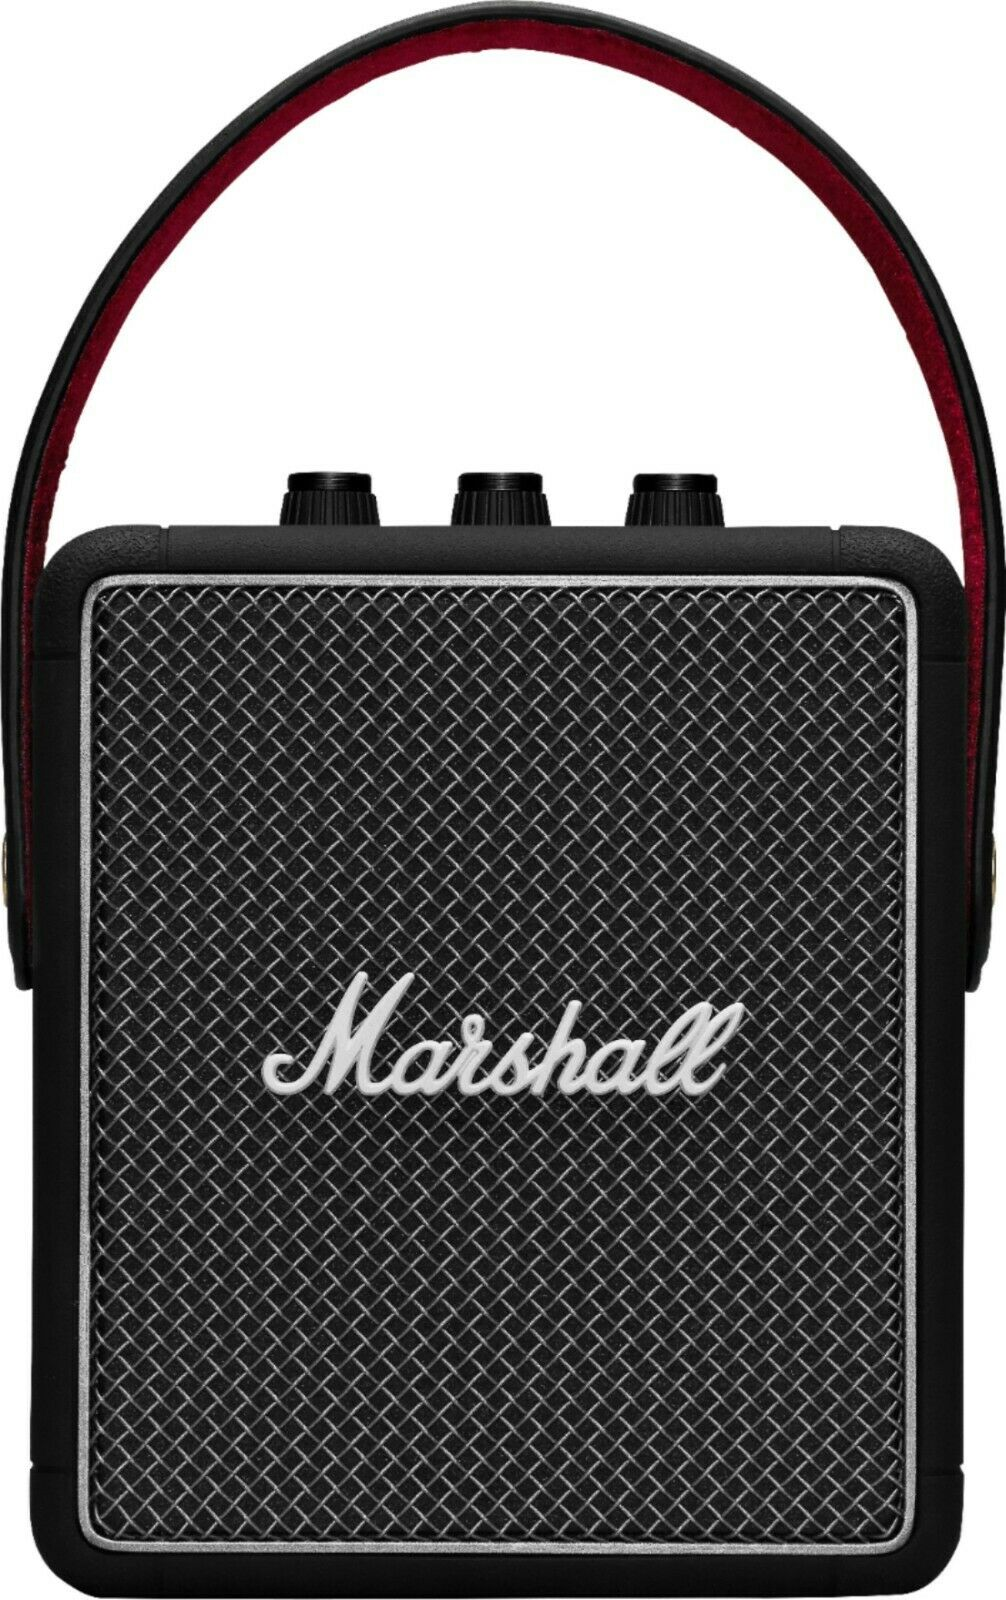 Brand New Marshall Stockwell II Portable Wireless Bluetooth